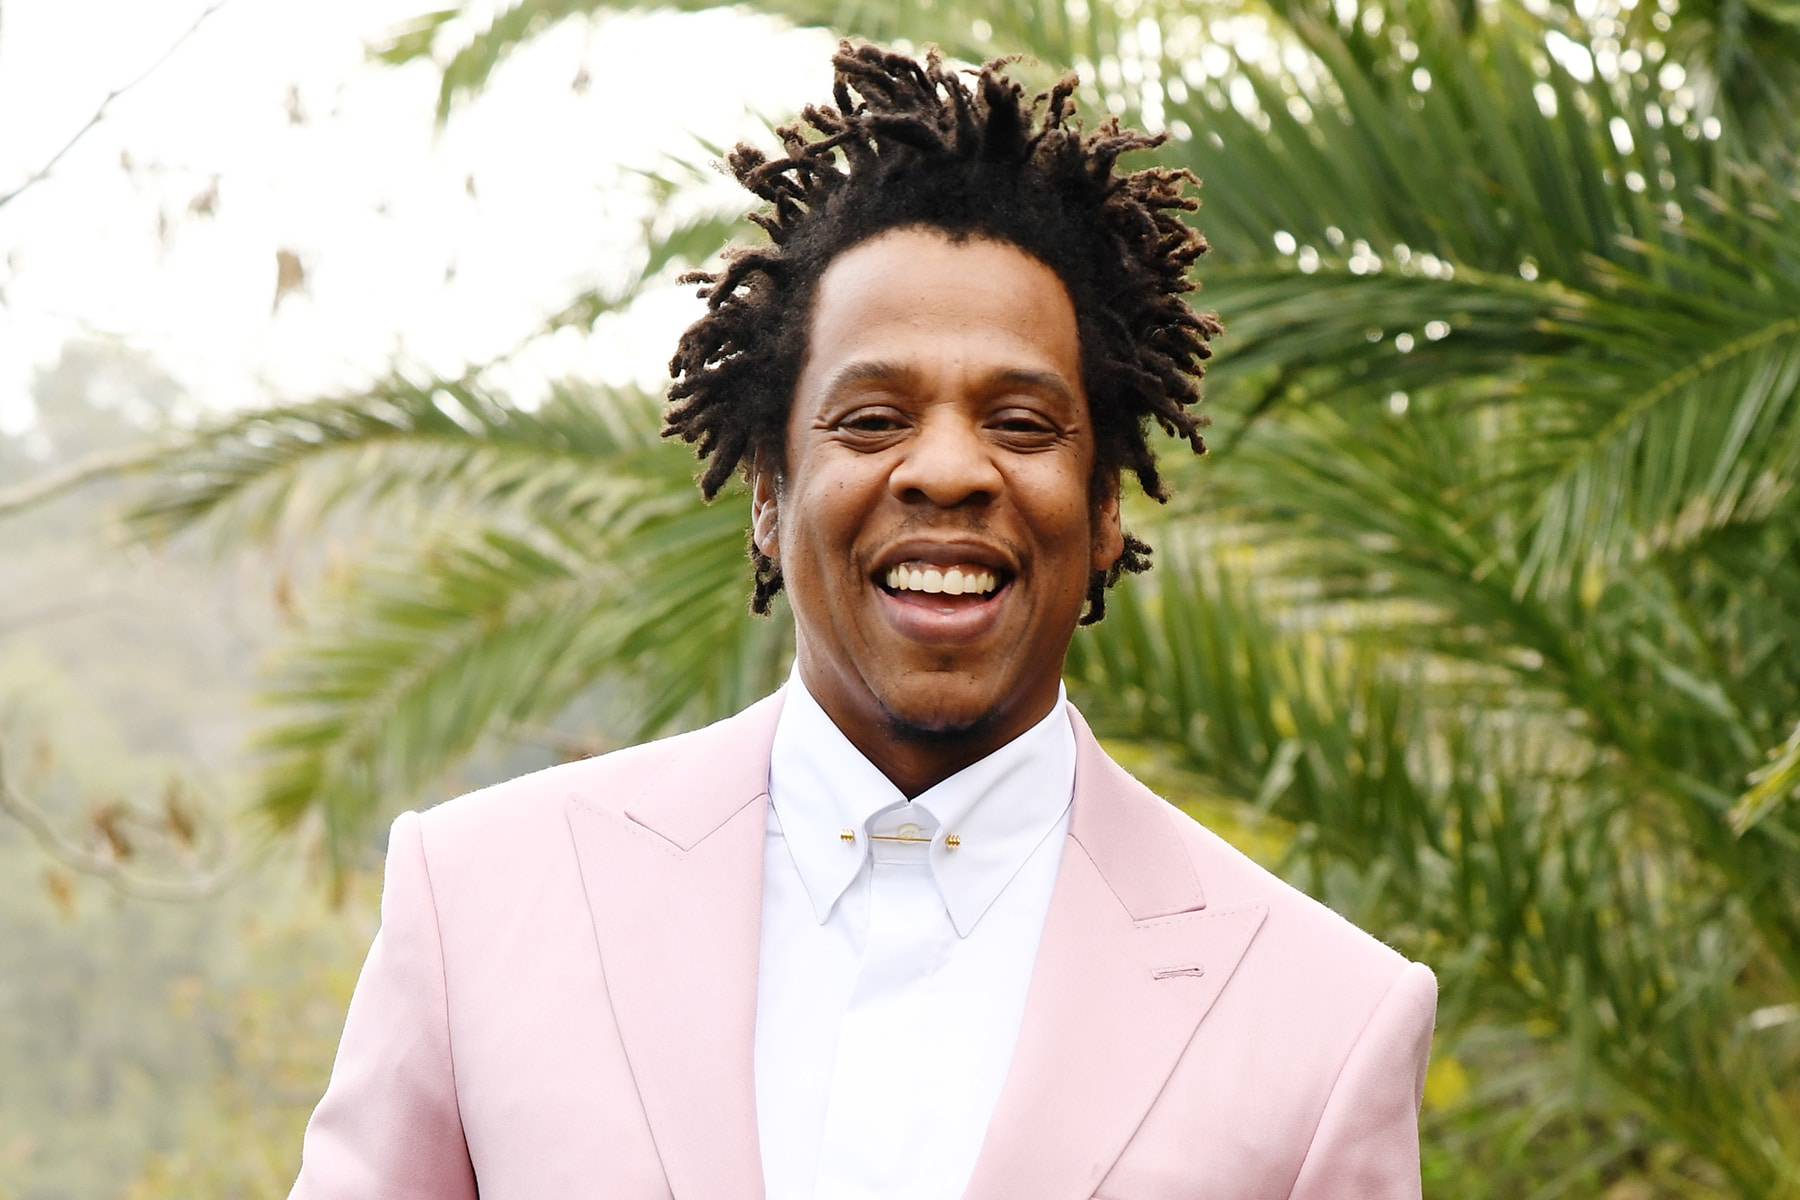 LOS ANGELES, CALIFORNIA - JANUARY 25:  Jay-Z attends 2020 Roc Nation THE BRUNCH on January 25, 2020 in Los Angeles, California. (Photo by Kevin Mazur/Getty Images for Roc Nation)